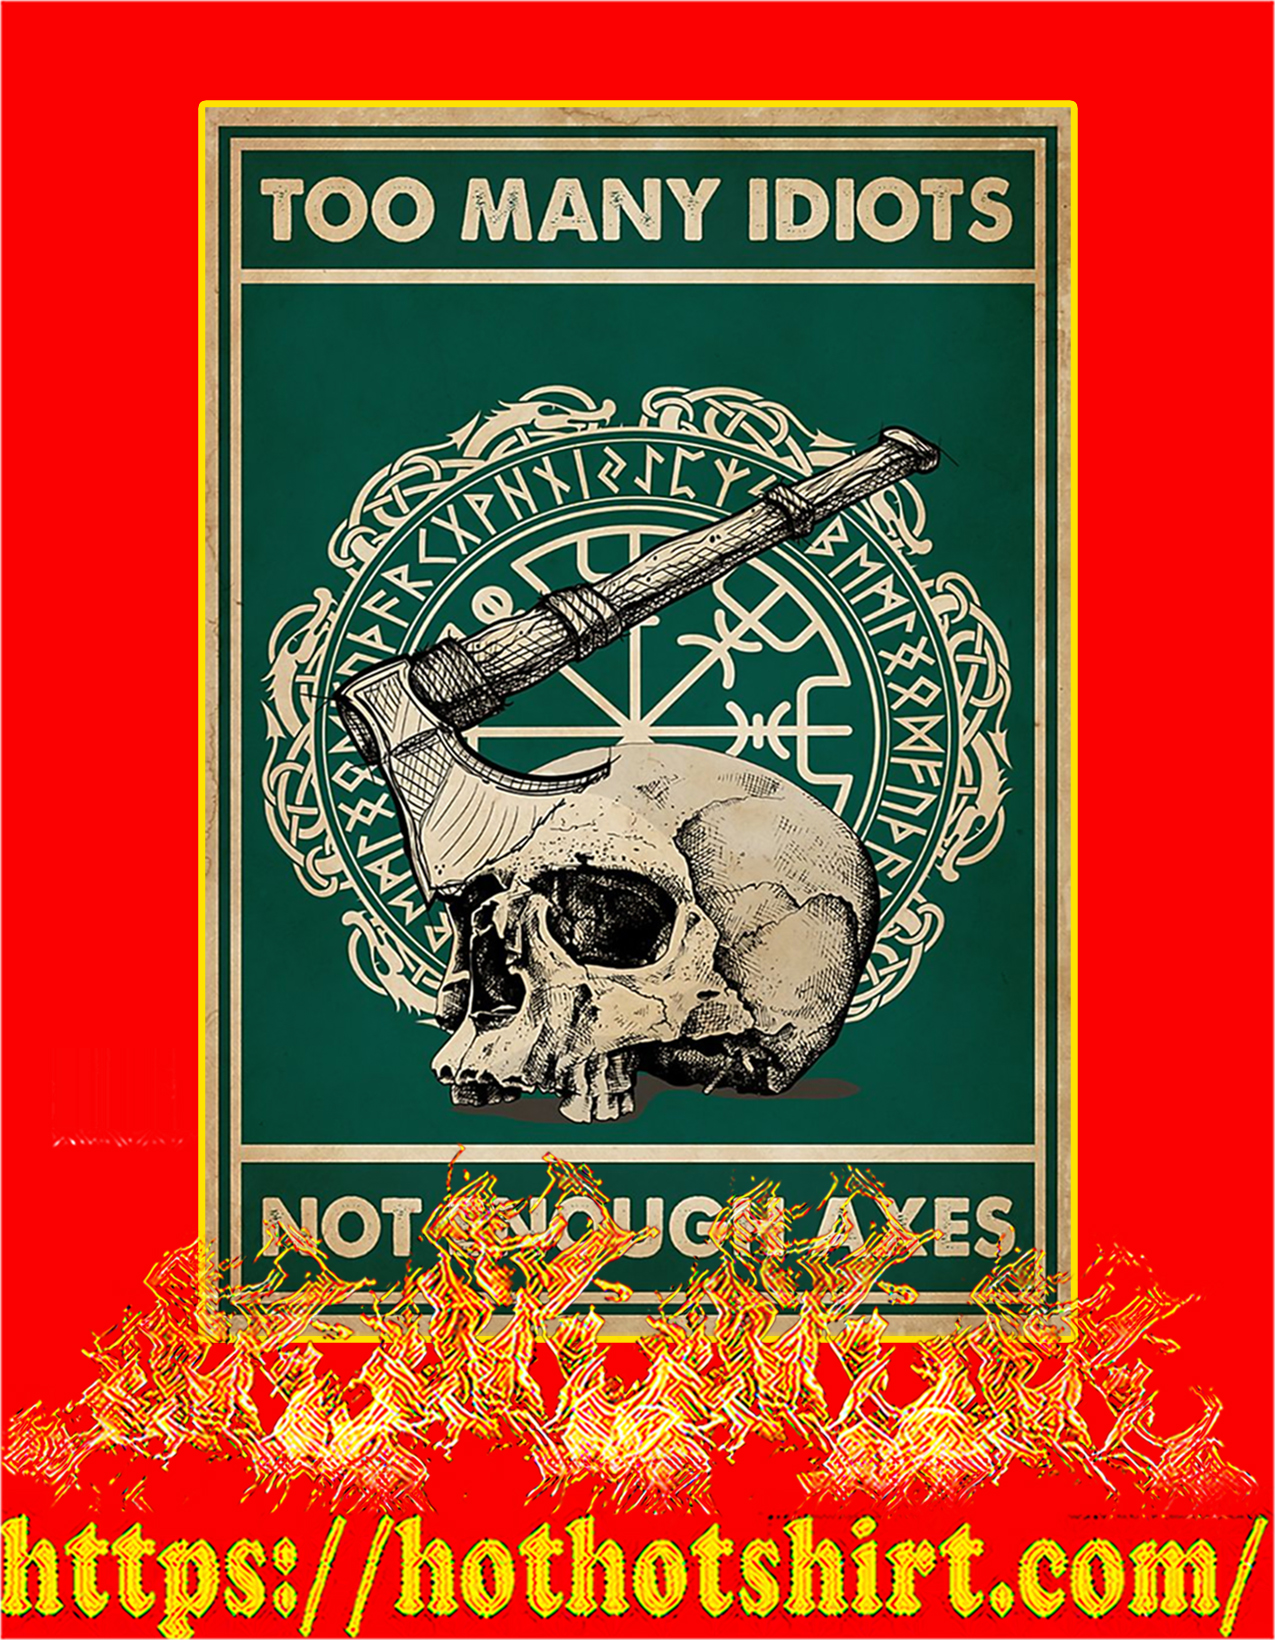 Too many idiots not enough axes poster - A2